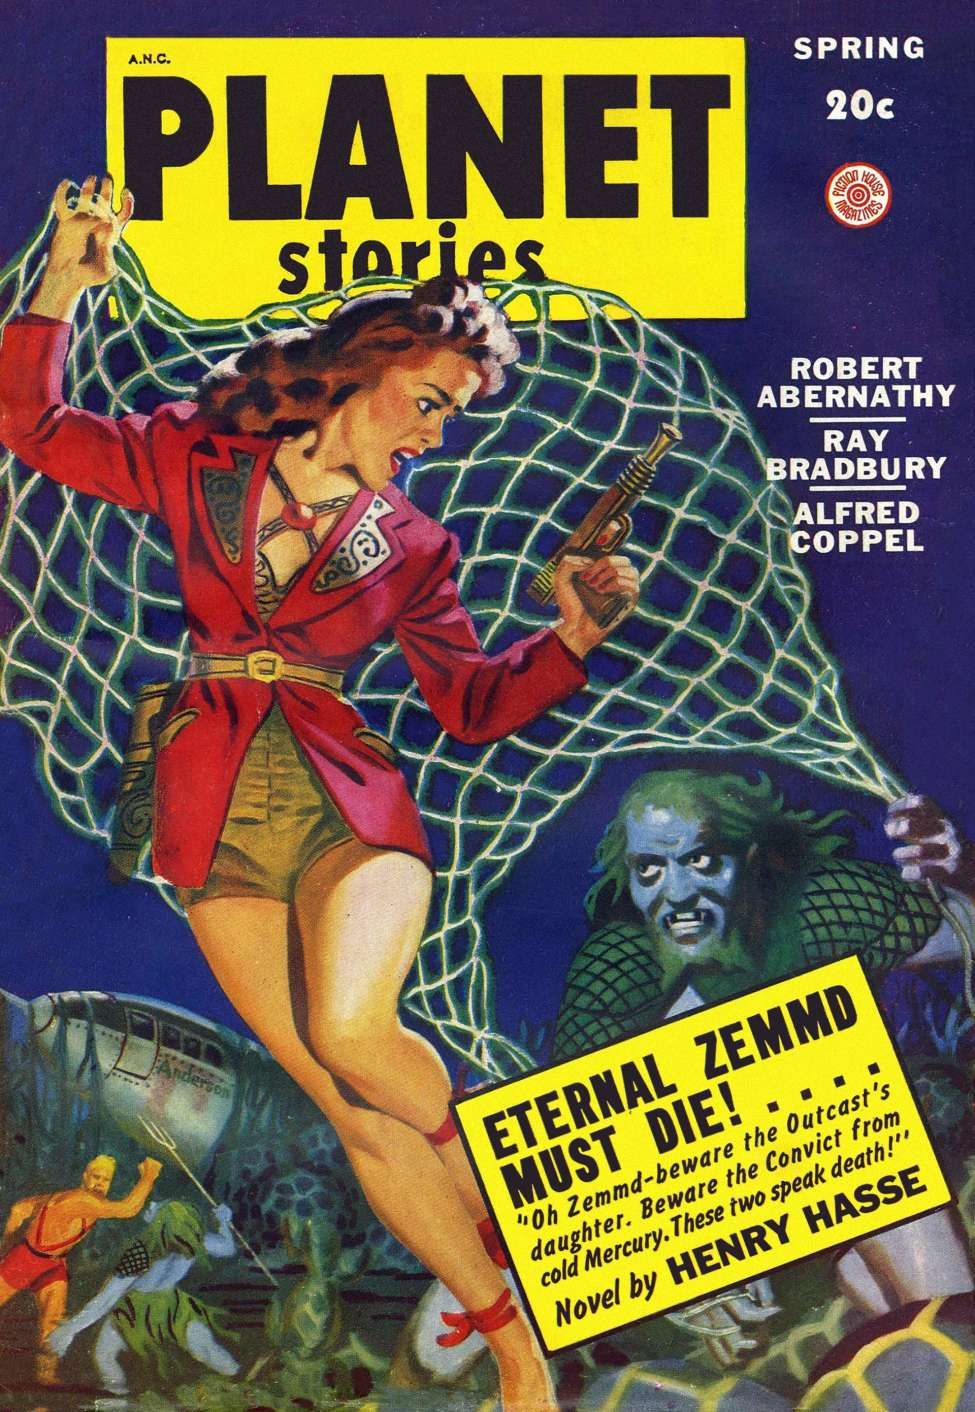 Comic Book Cover For Planet Stories v04 02 - Eternal Zemmd Must Die! - Henry Hasse